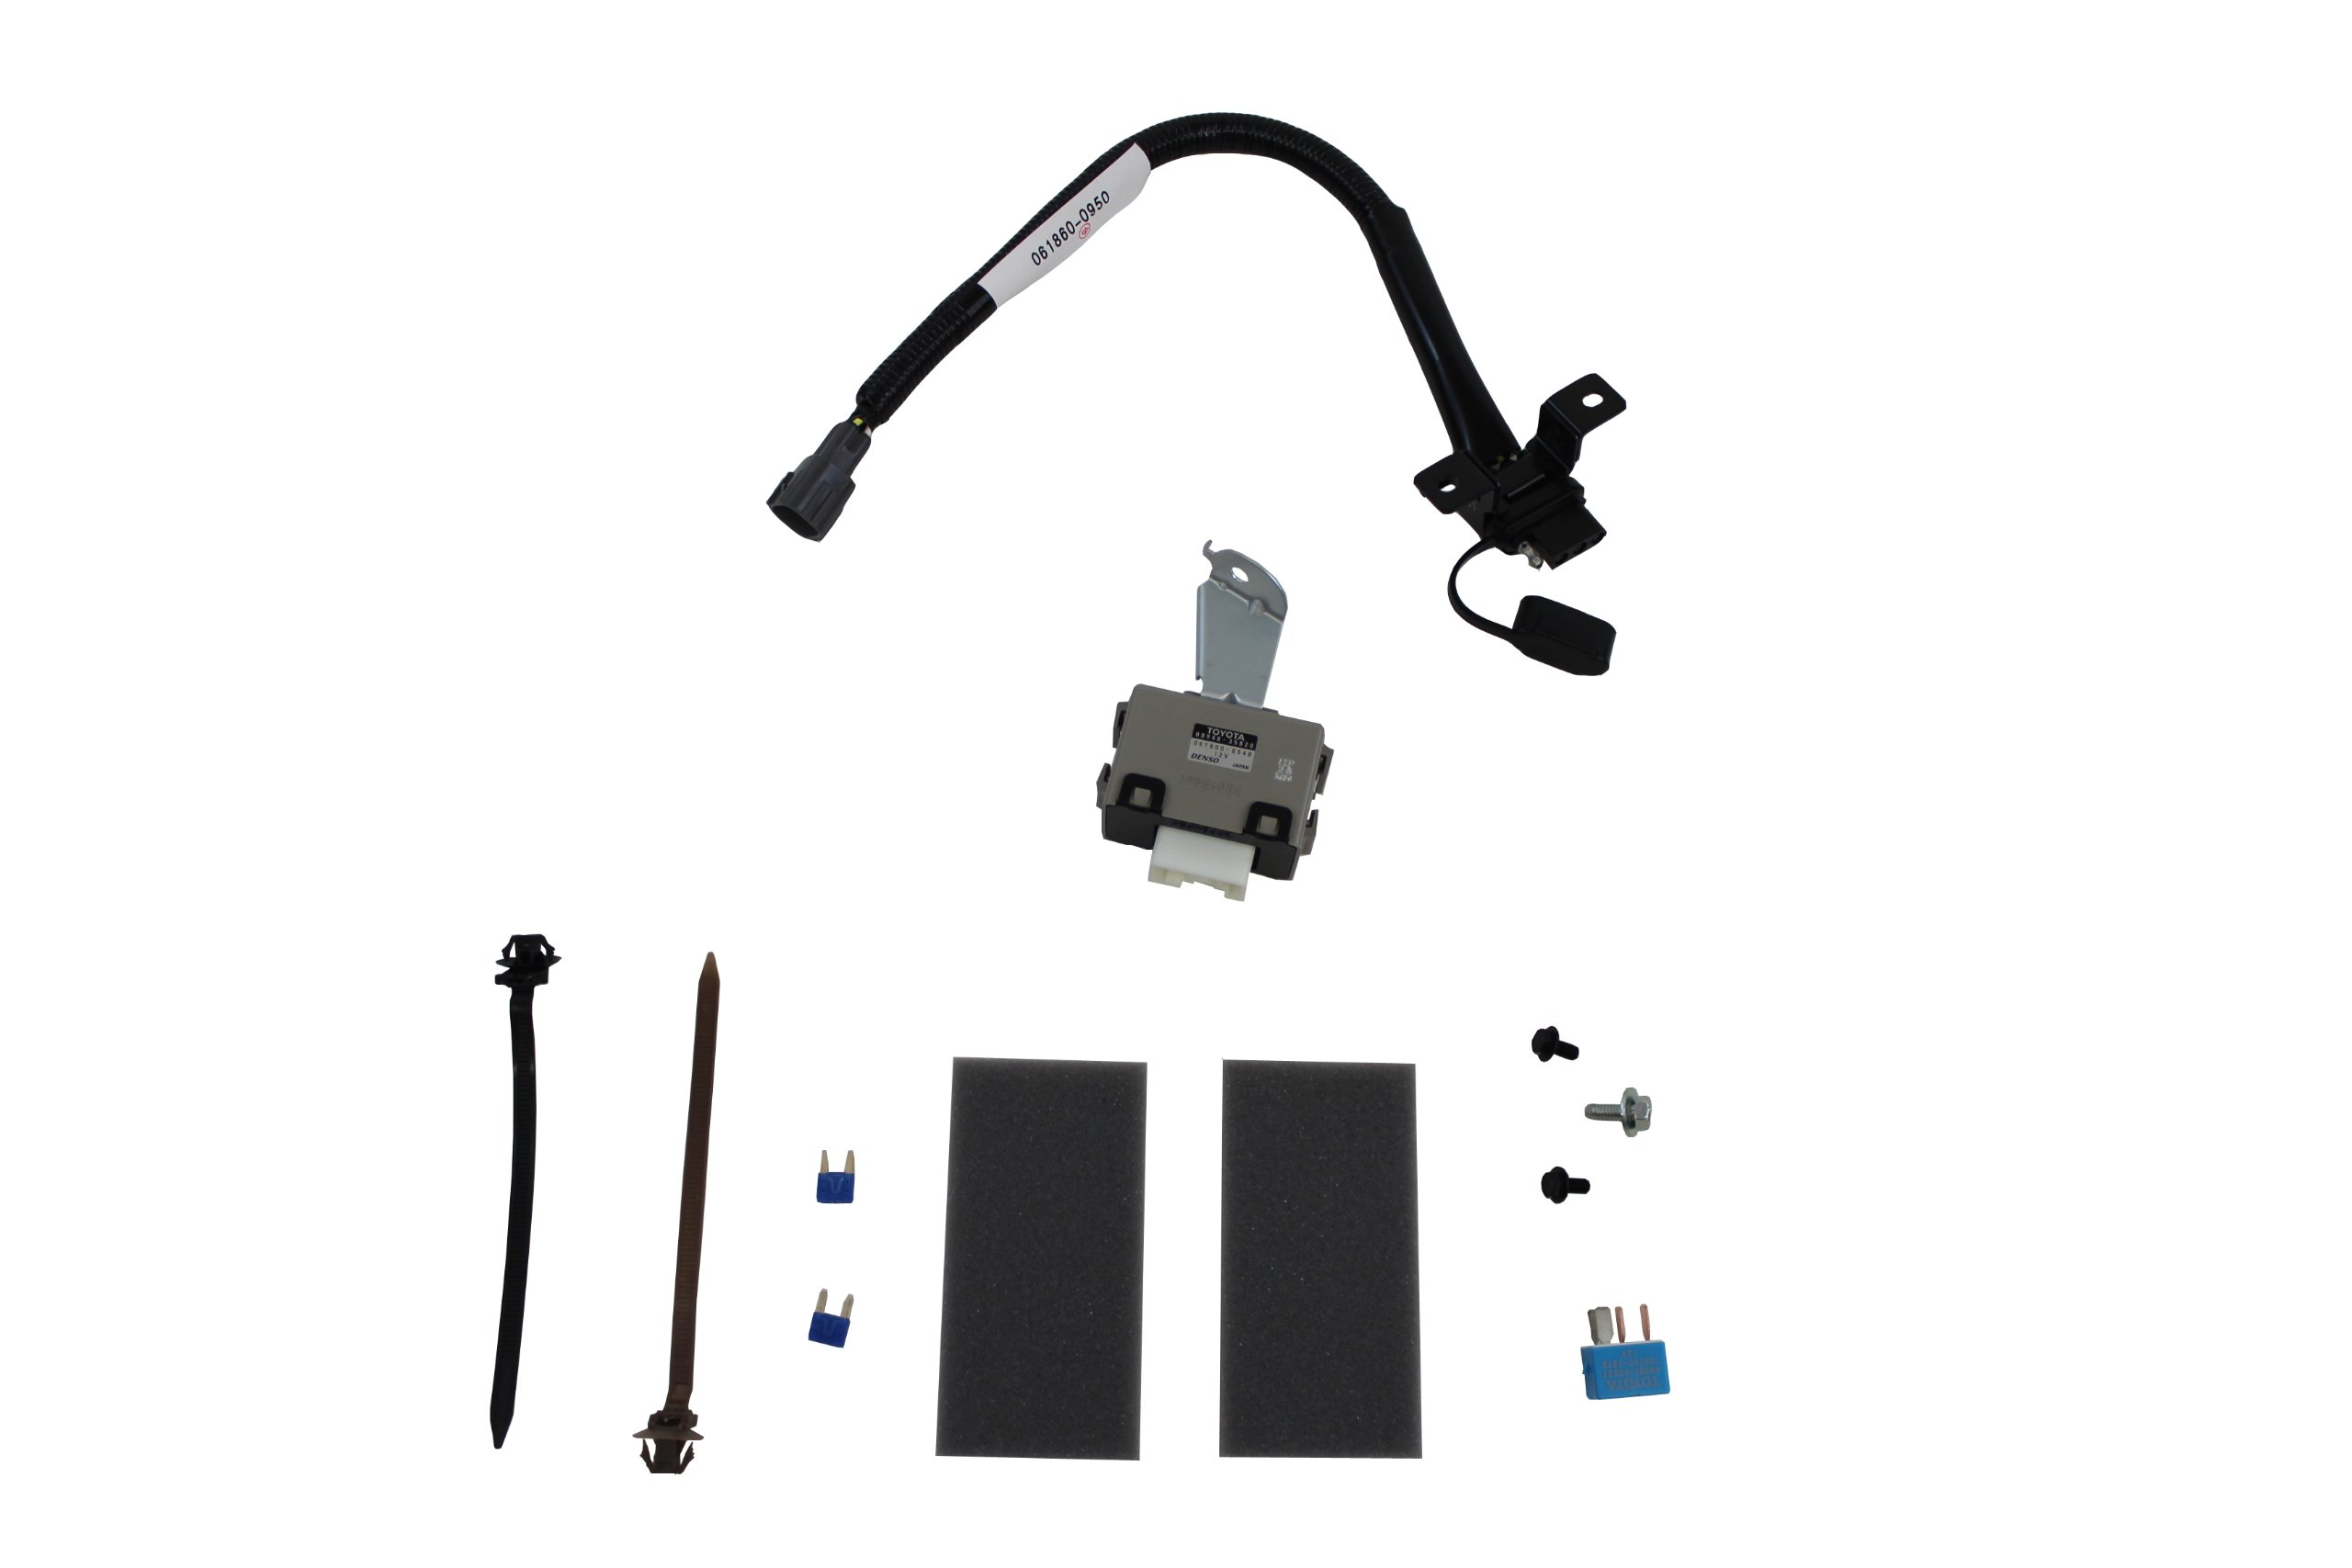 TOYOTA Genuine Accessories 08921-35870 Hitch Converter Kit by TOYOTA